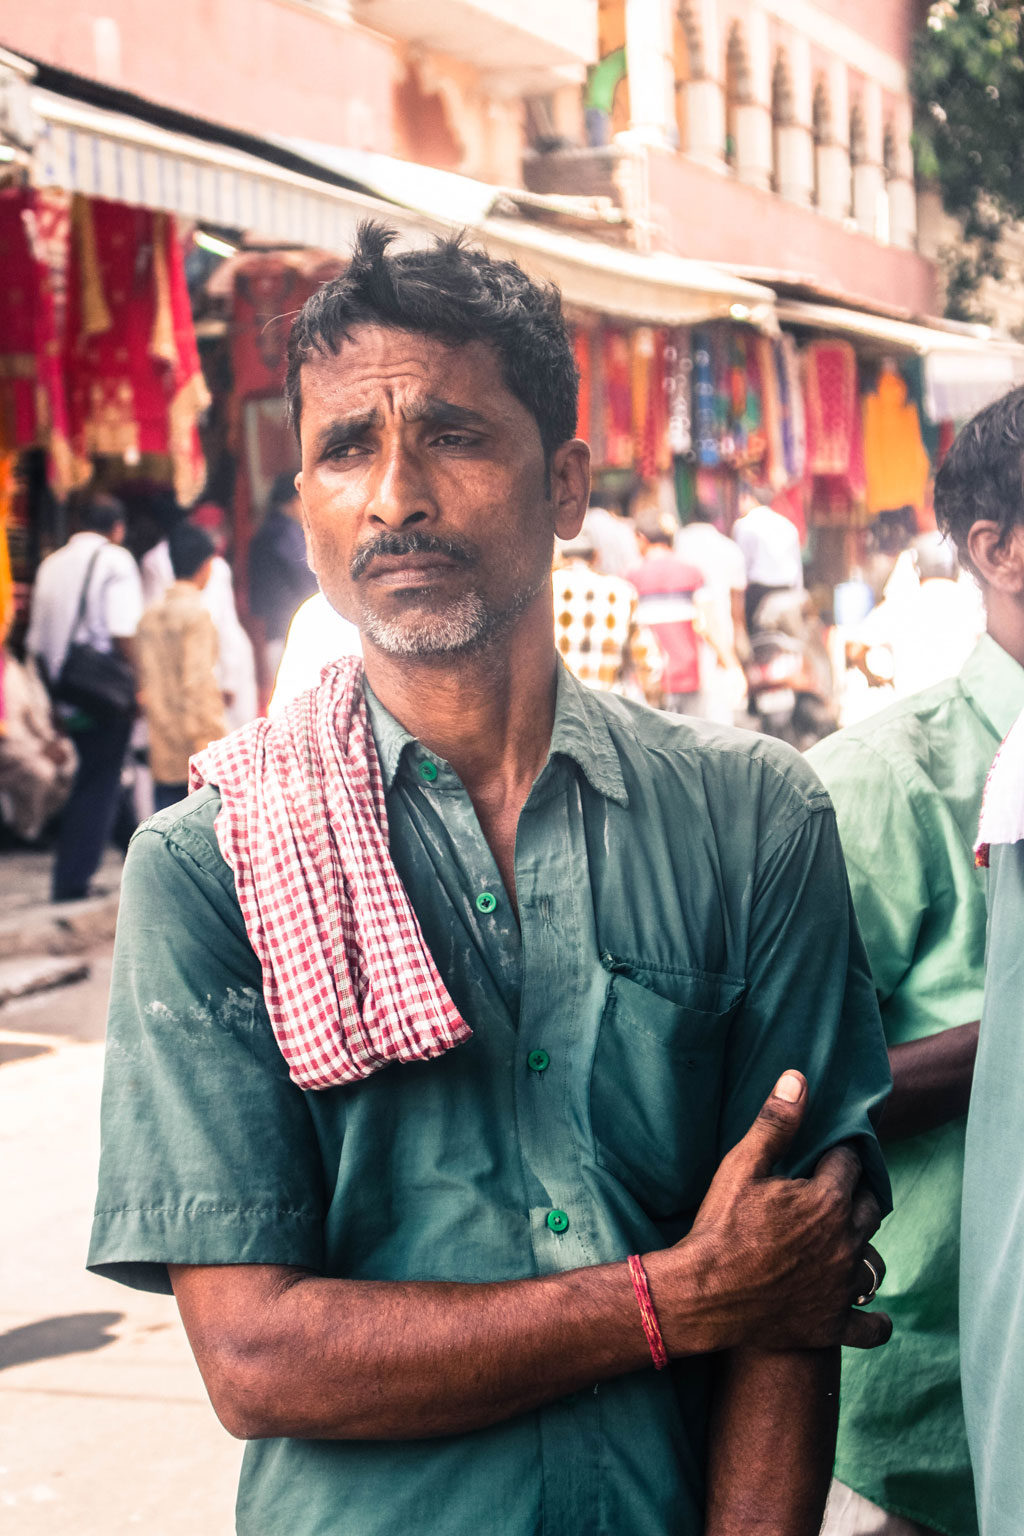 A local hand rickshaw driver took us through the busy streets of Chandni Chowk recommending places that we shouldn't miss out upon.